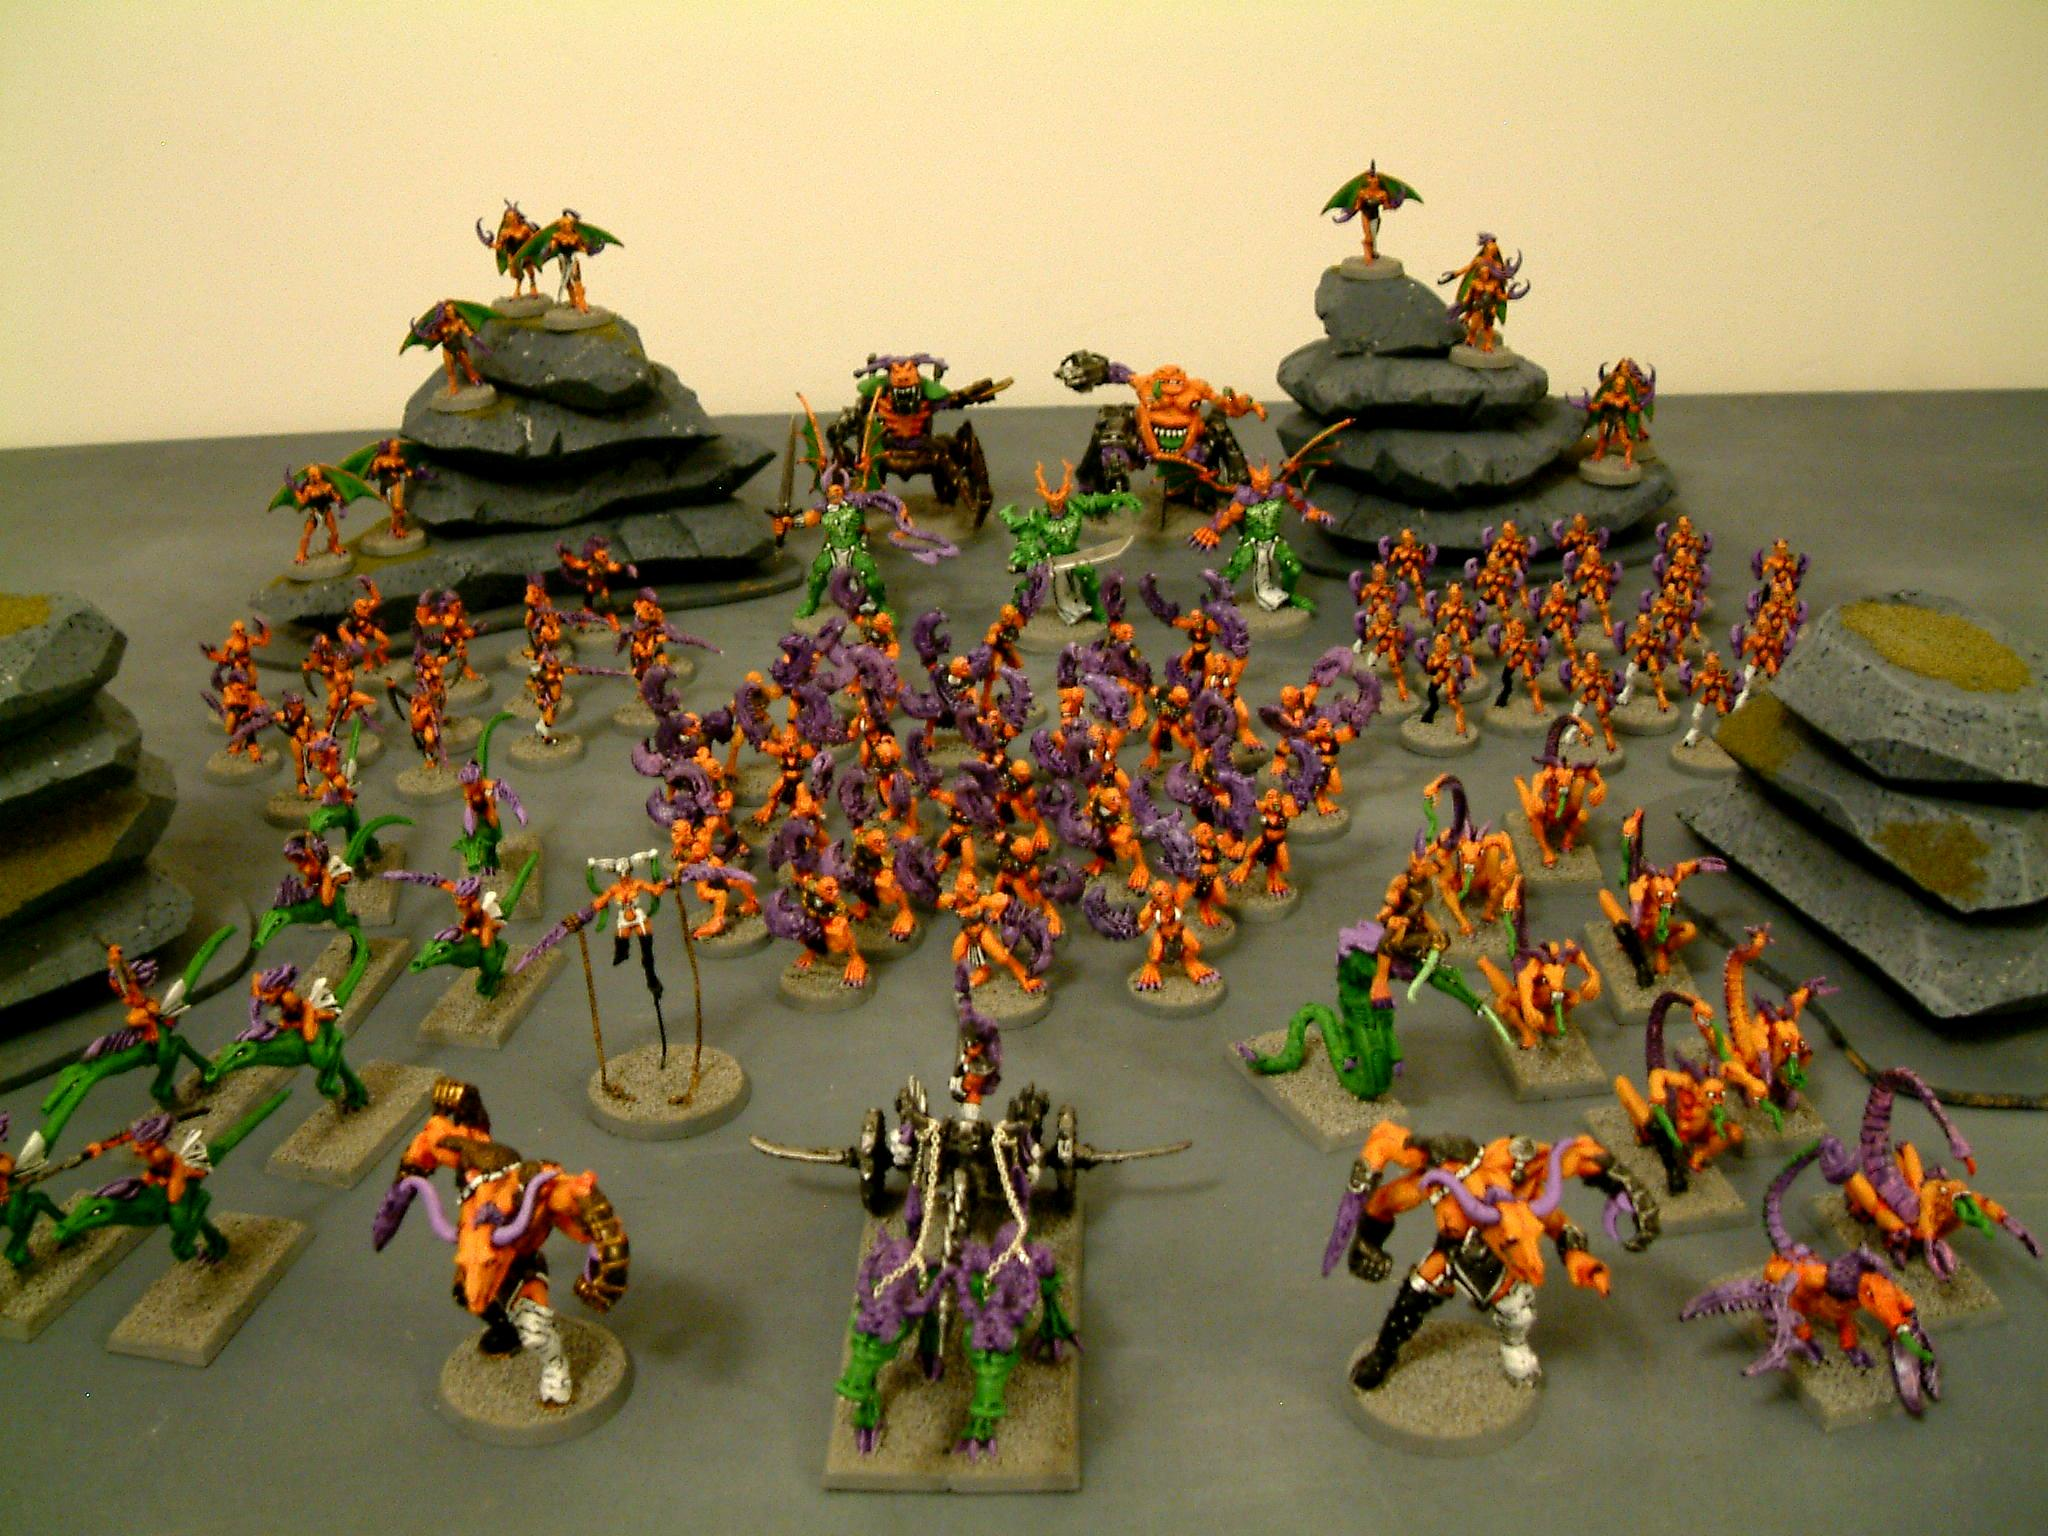 Army, Chaos, Classic, Daemonettes, Daemons, Fiends, Furies, Green, Keeper, Old, Orange, Out Of Production, Princes, Purple, Secrets, Slaanesh, Warhammer 40,000